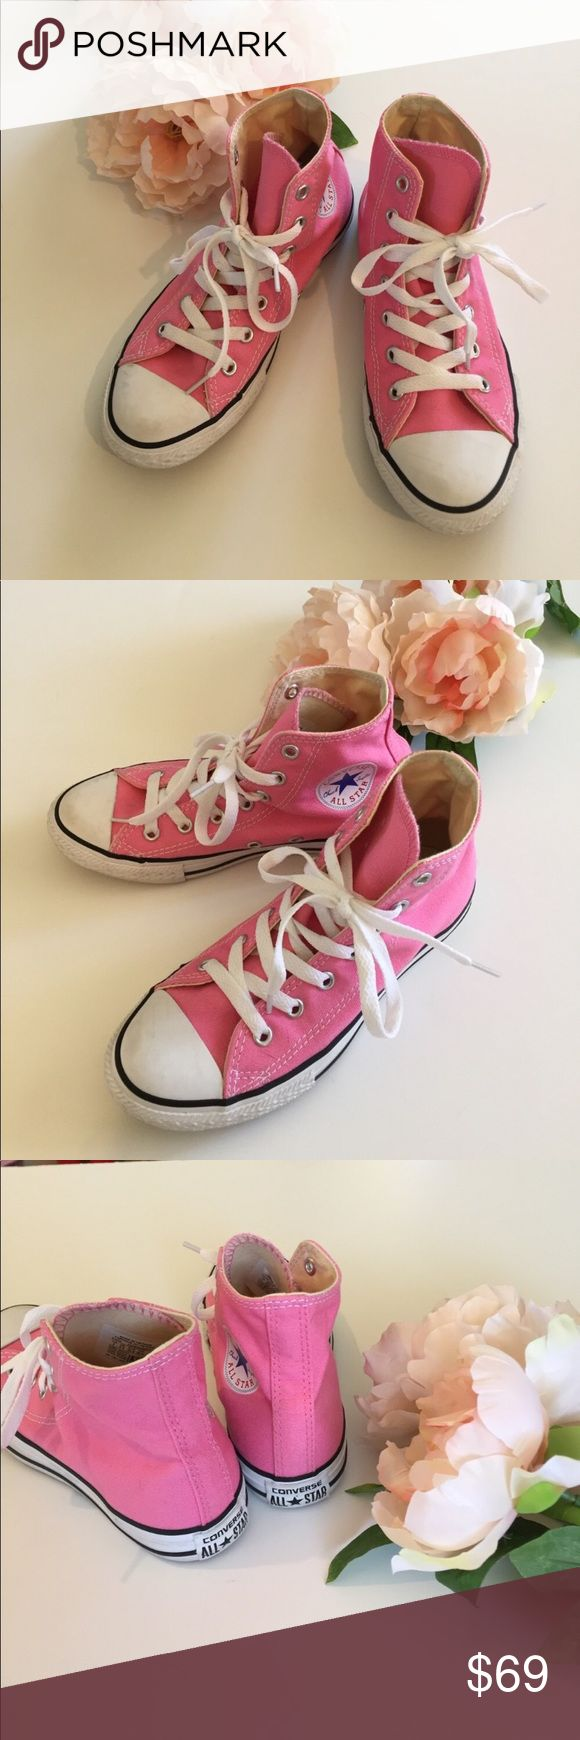 Converse - Kids high top Chucks Excellent condition. Kids size 2. Converse Shoes Sneakers